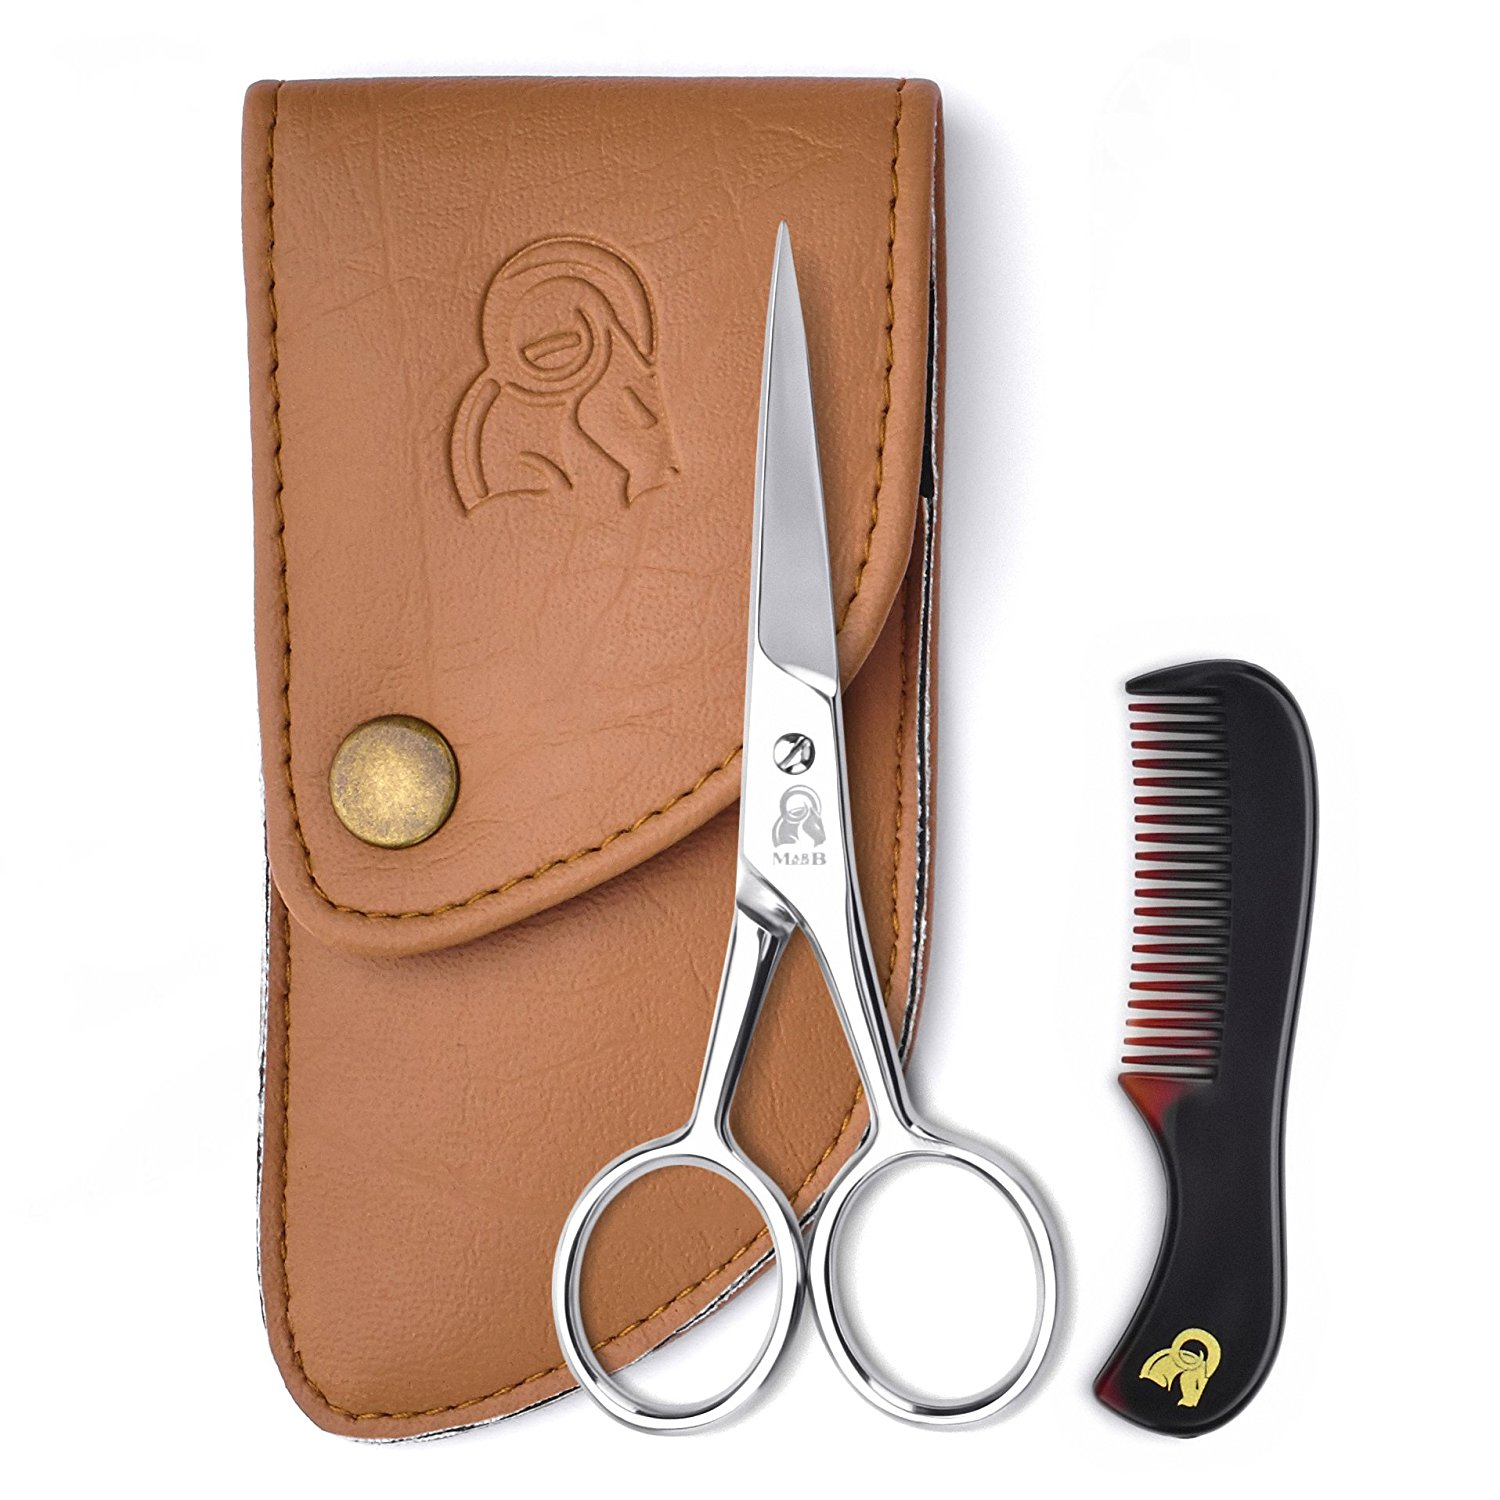 Sally Hansen Moustache Beard Scissors with Comb